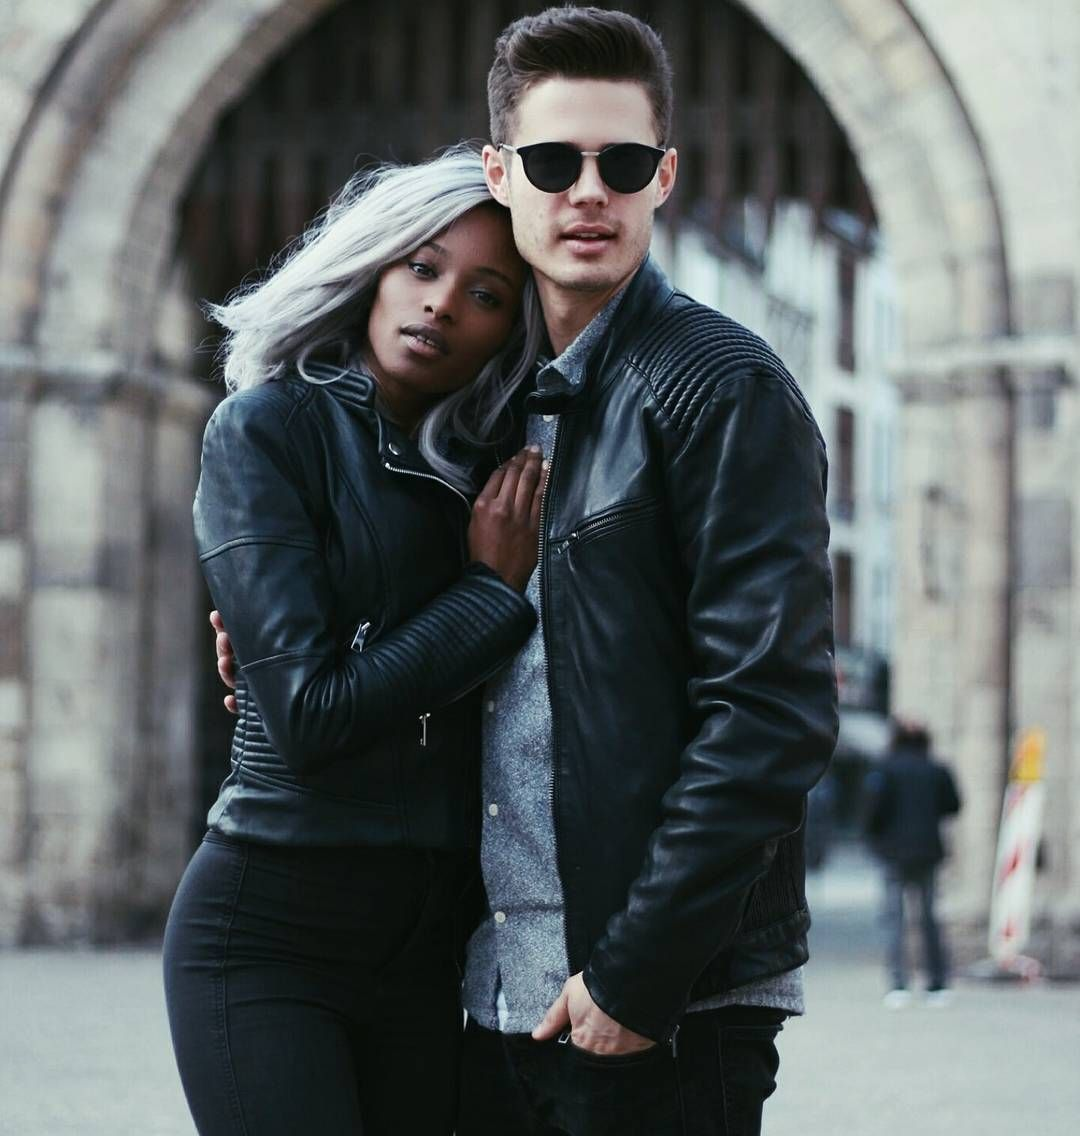 Leather dating sites